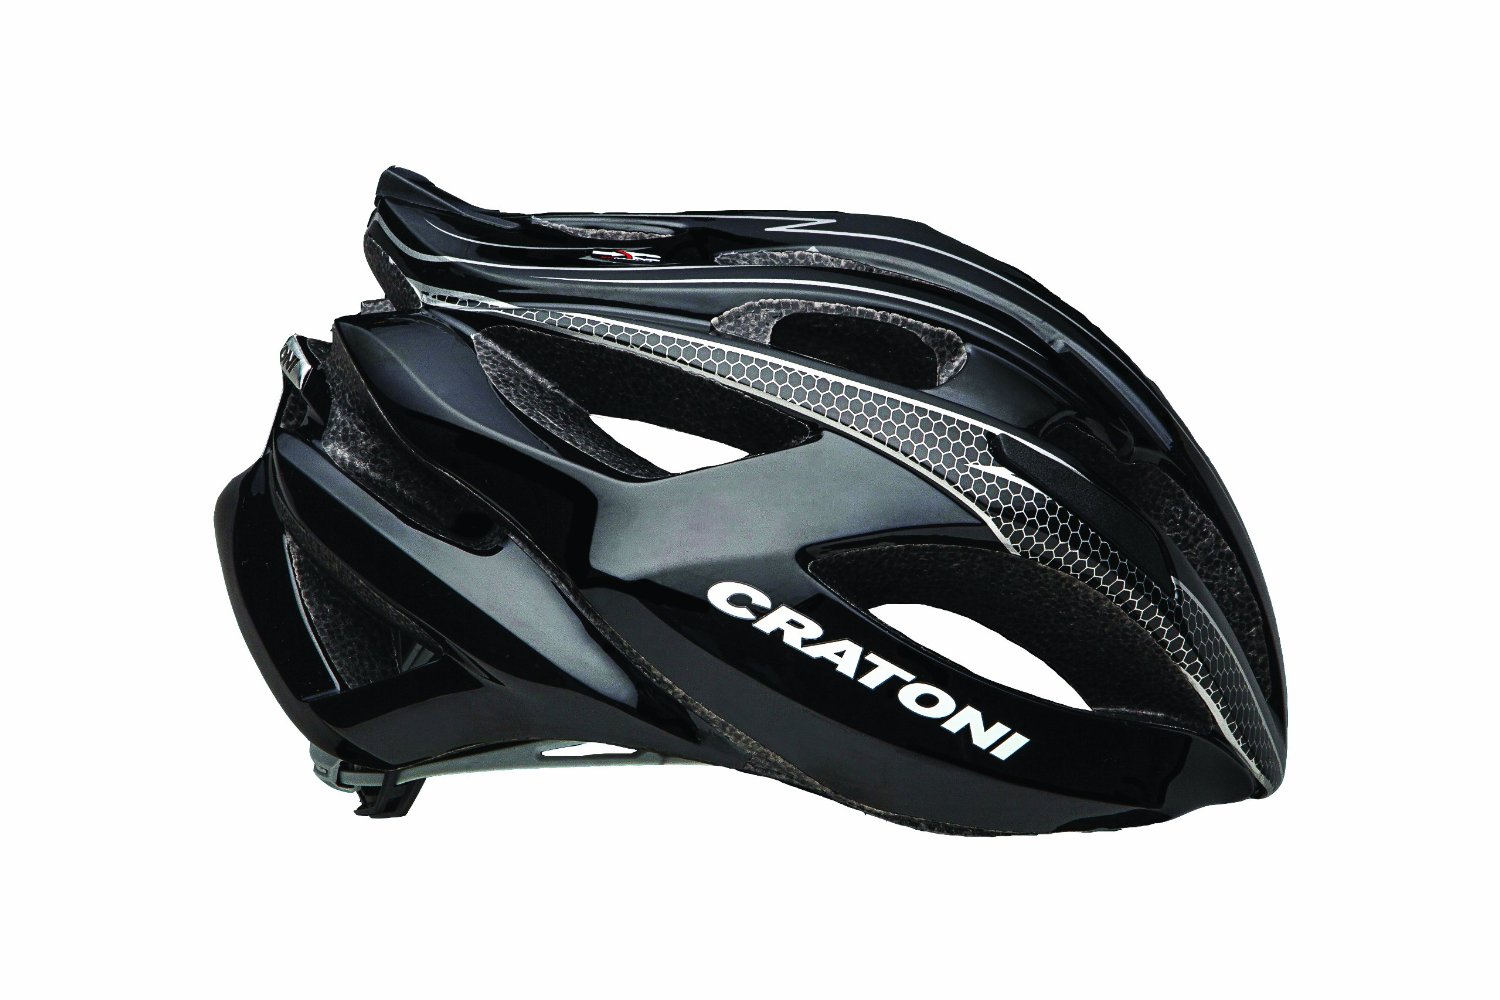 Large Cratoni Bicycle Helmets